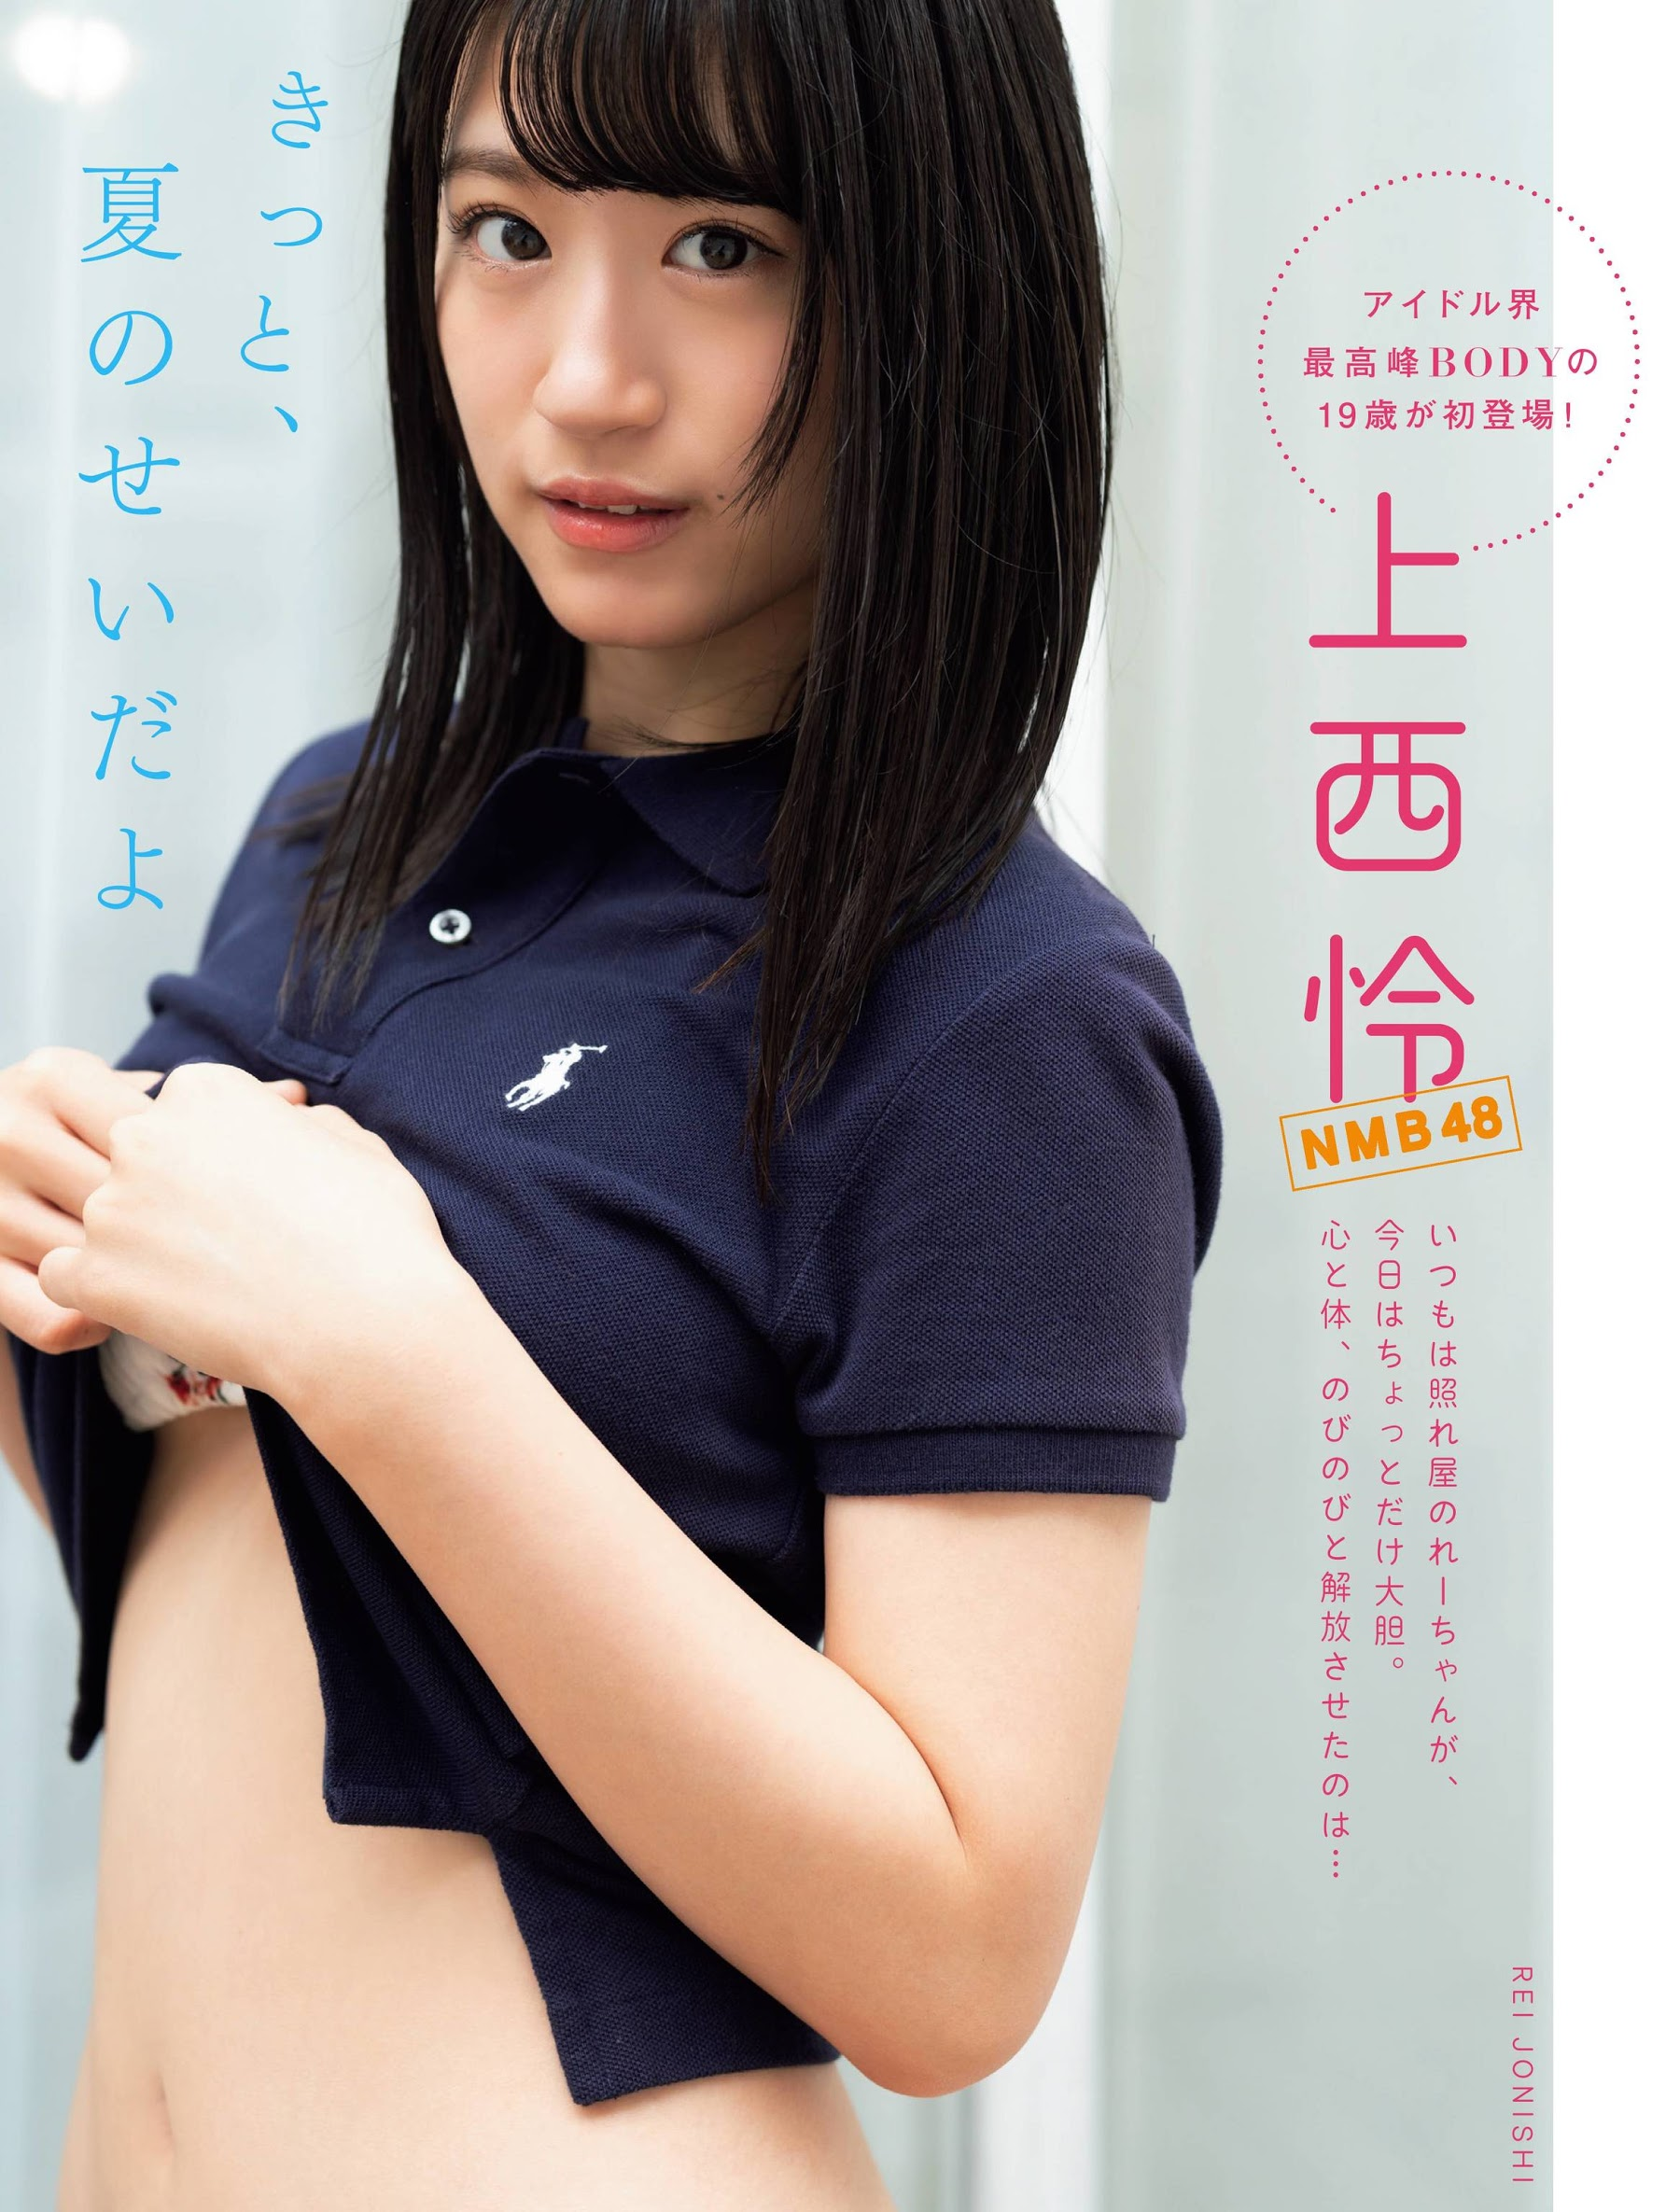 Rei Uenishi19yearold NMB48 with the best body in the world of idols 2020001